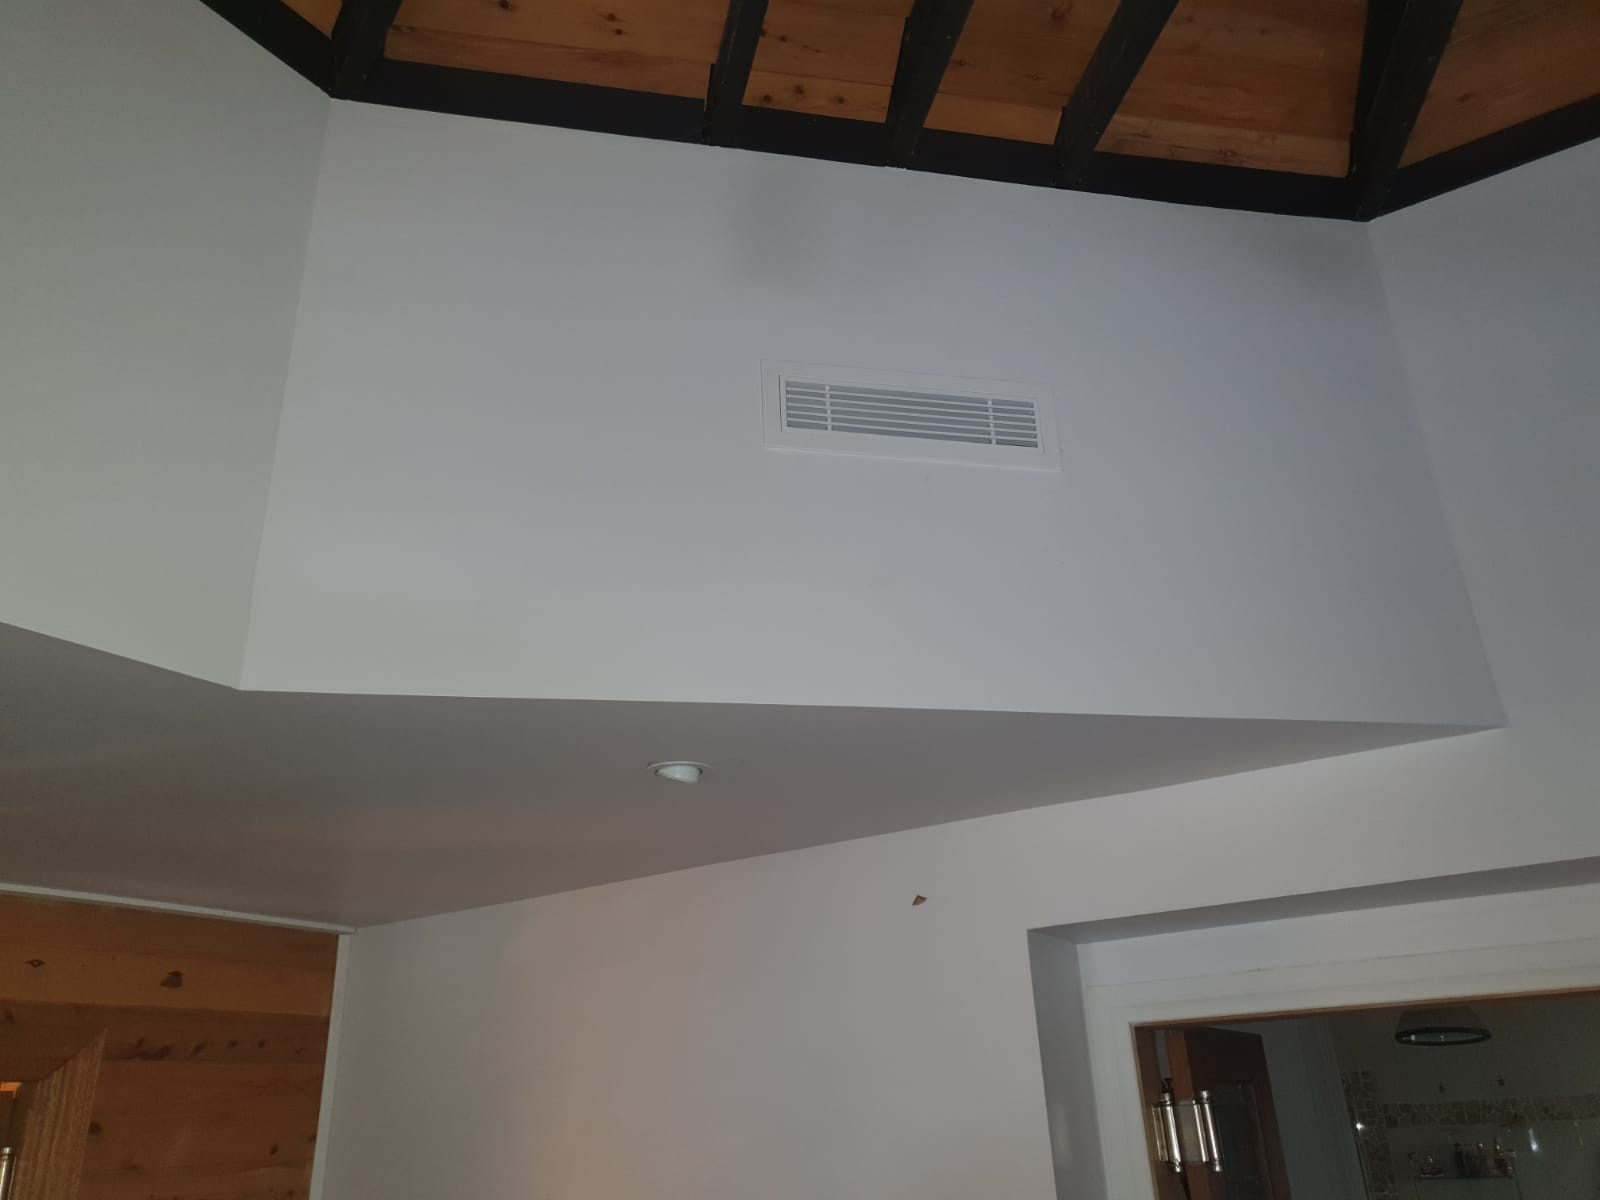 A ducted air conditioning unit